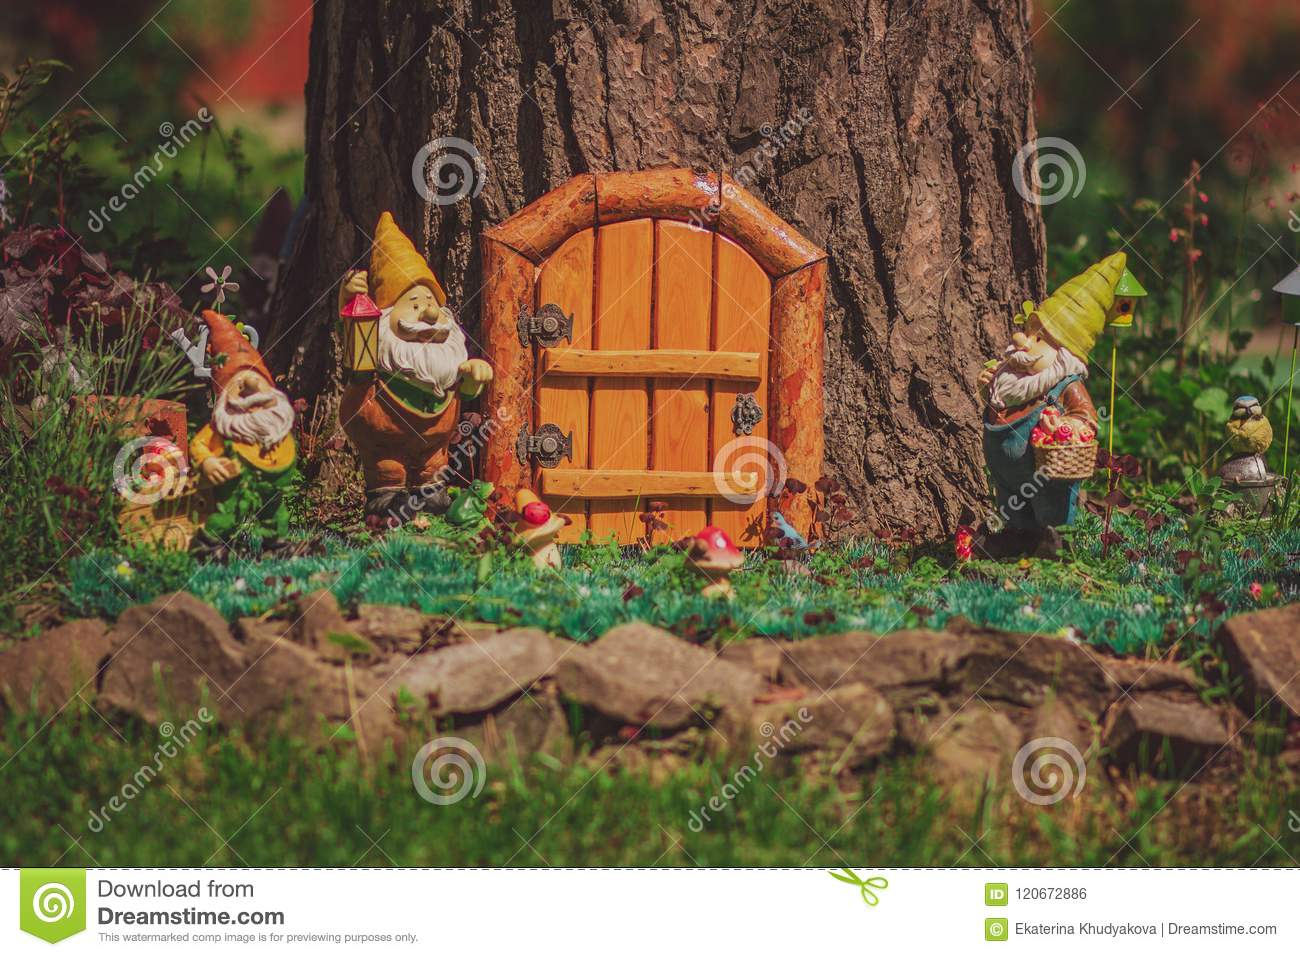 Fairy Tale Tree House, Cute Garden Gnome Stock Photo - Image of lawn ...